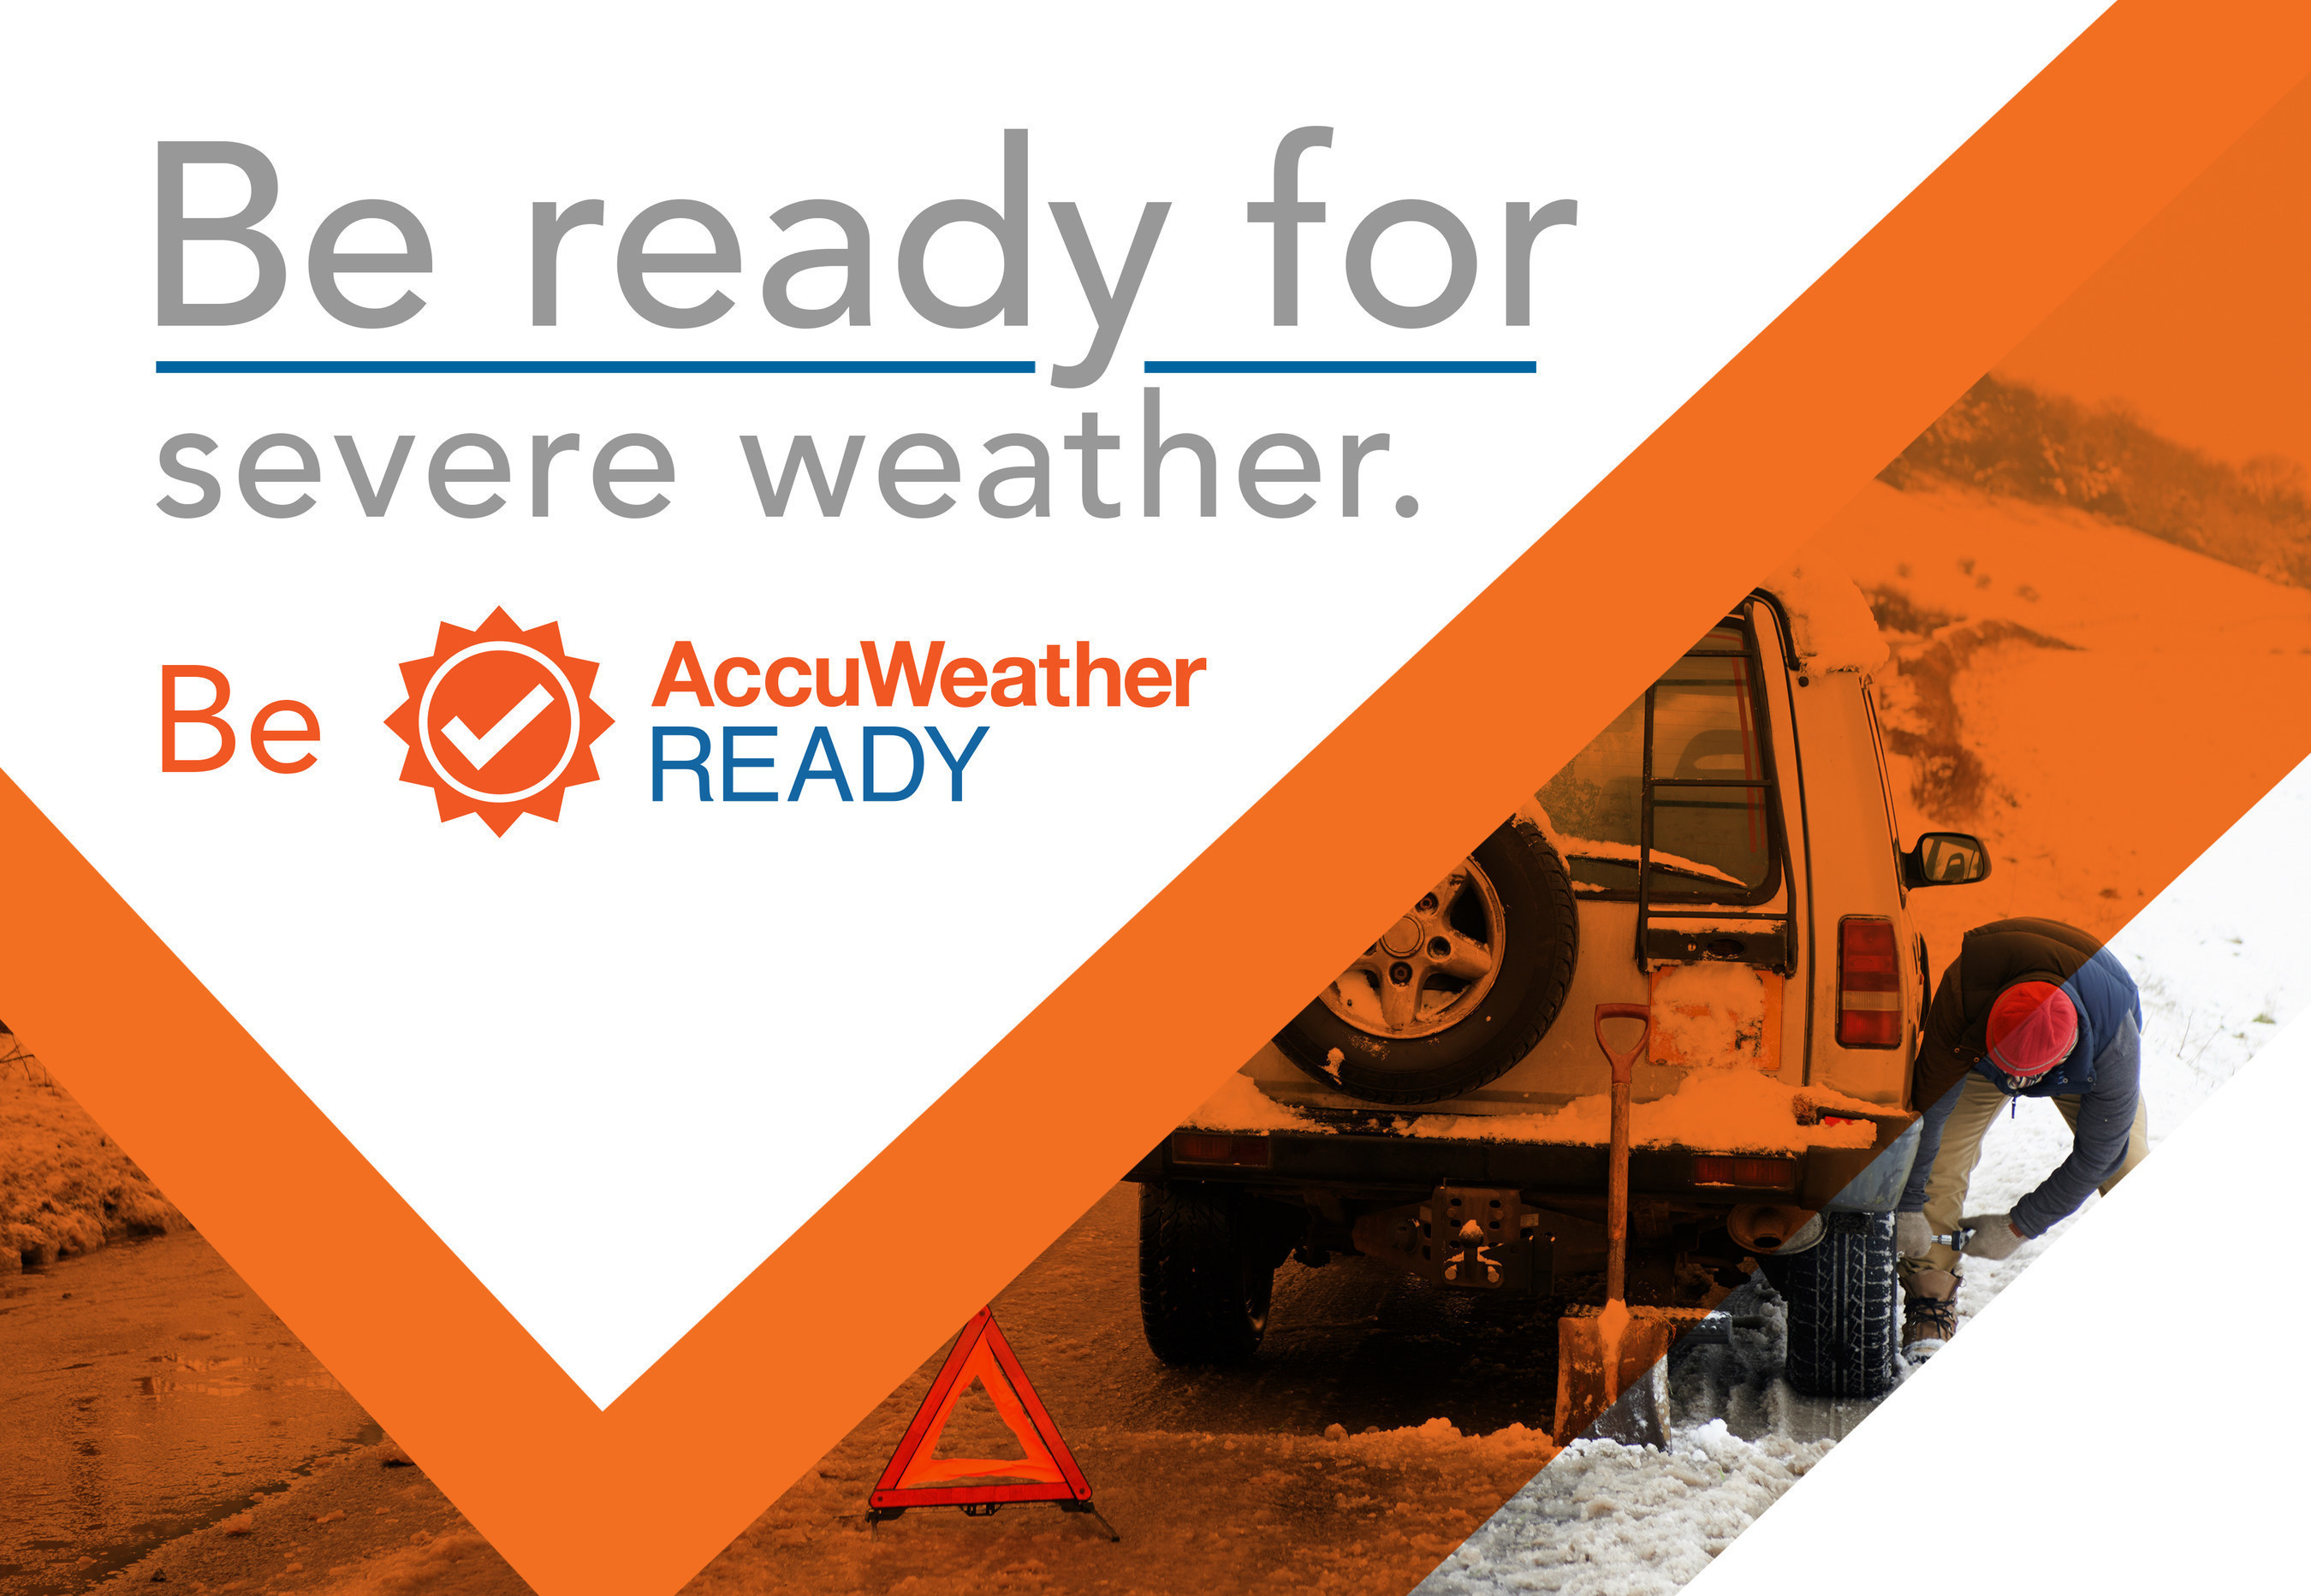 """AccuWeather Announces New """"AccuWeather Ready"""" Weather Preparedness Program with Life-Saving Weather Information and Tools to Keep People Safe"""